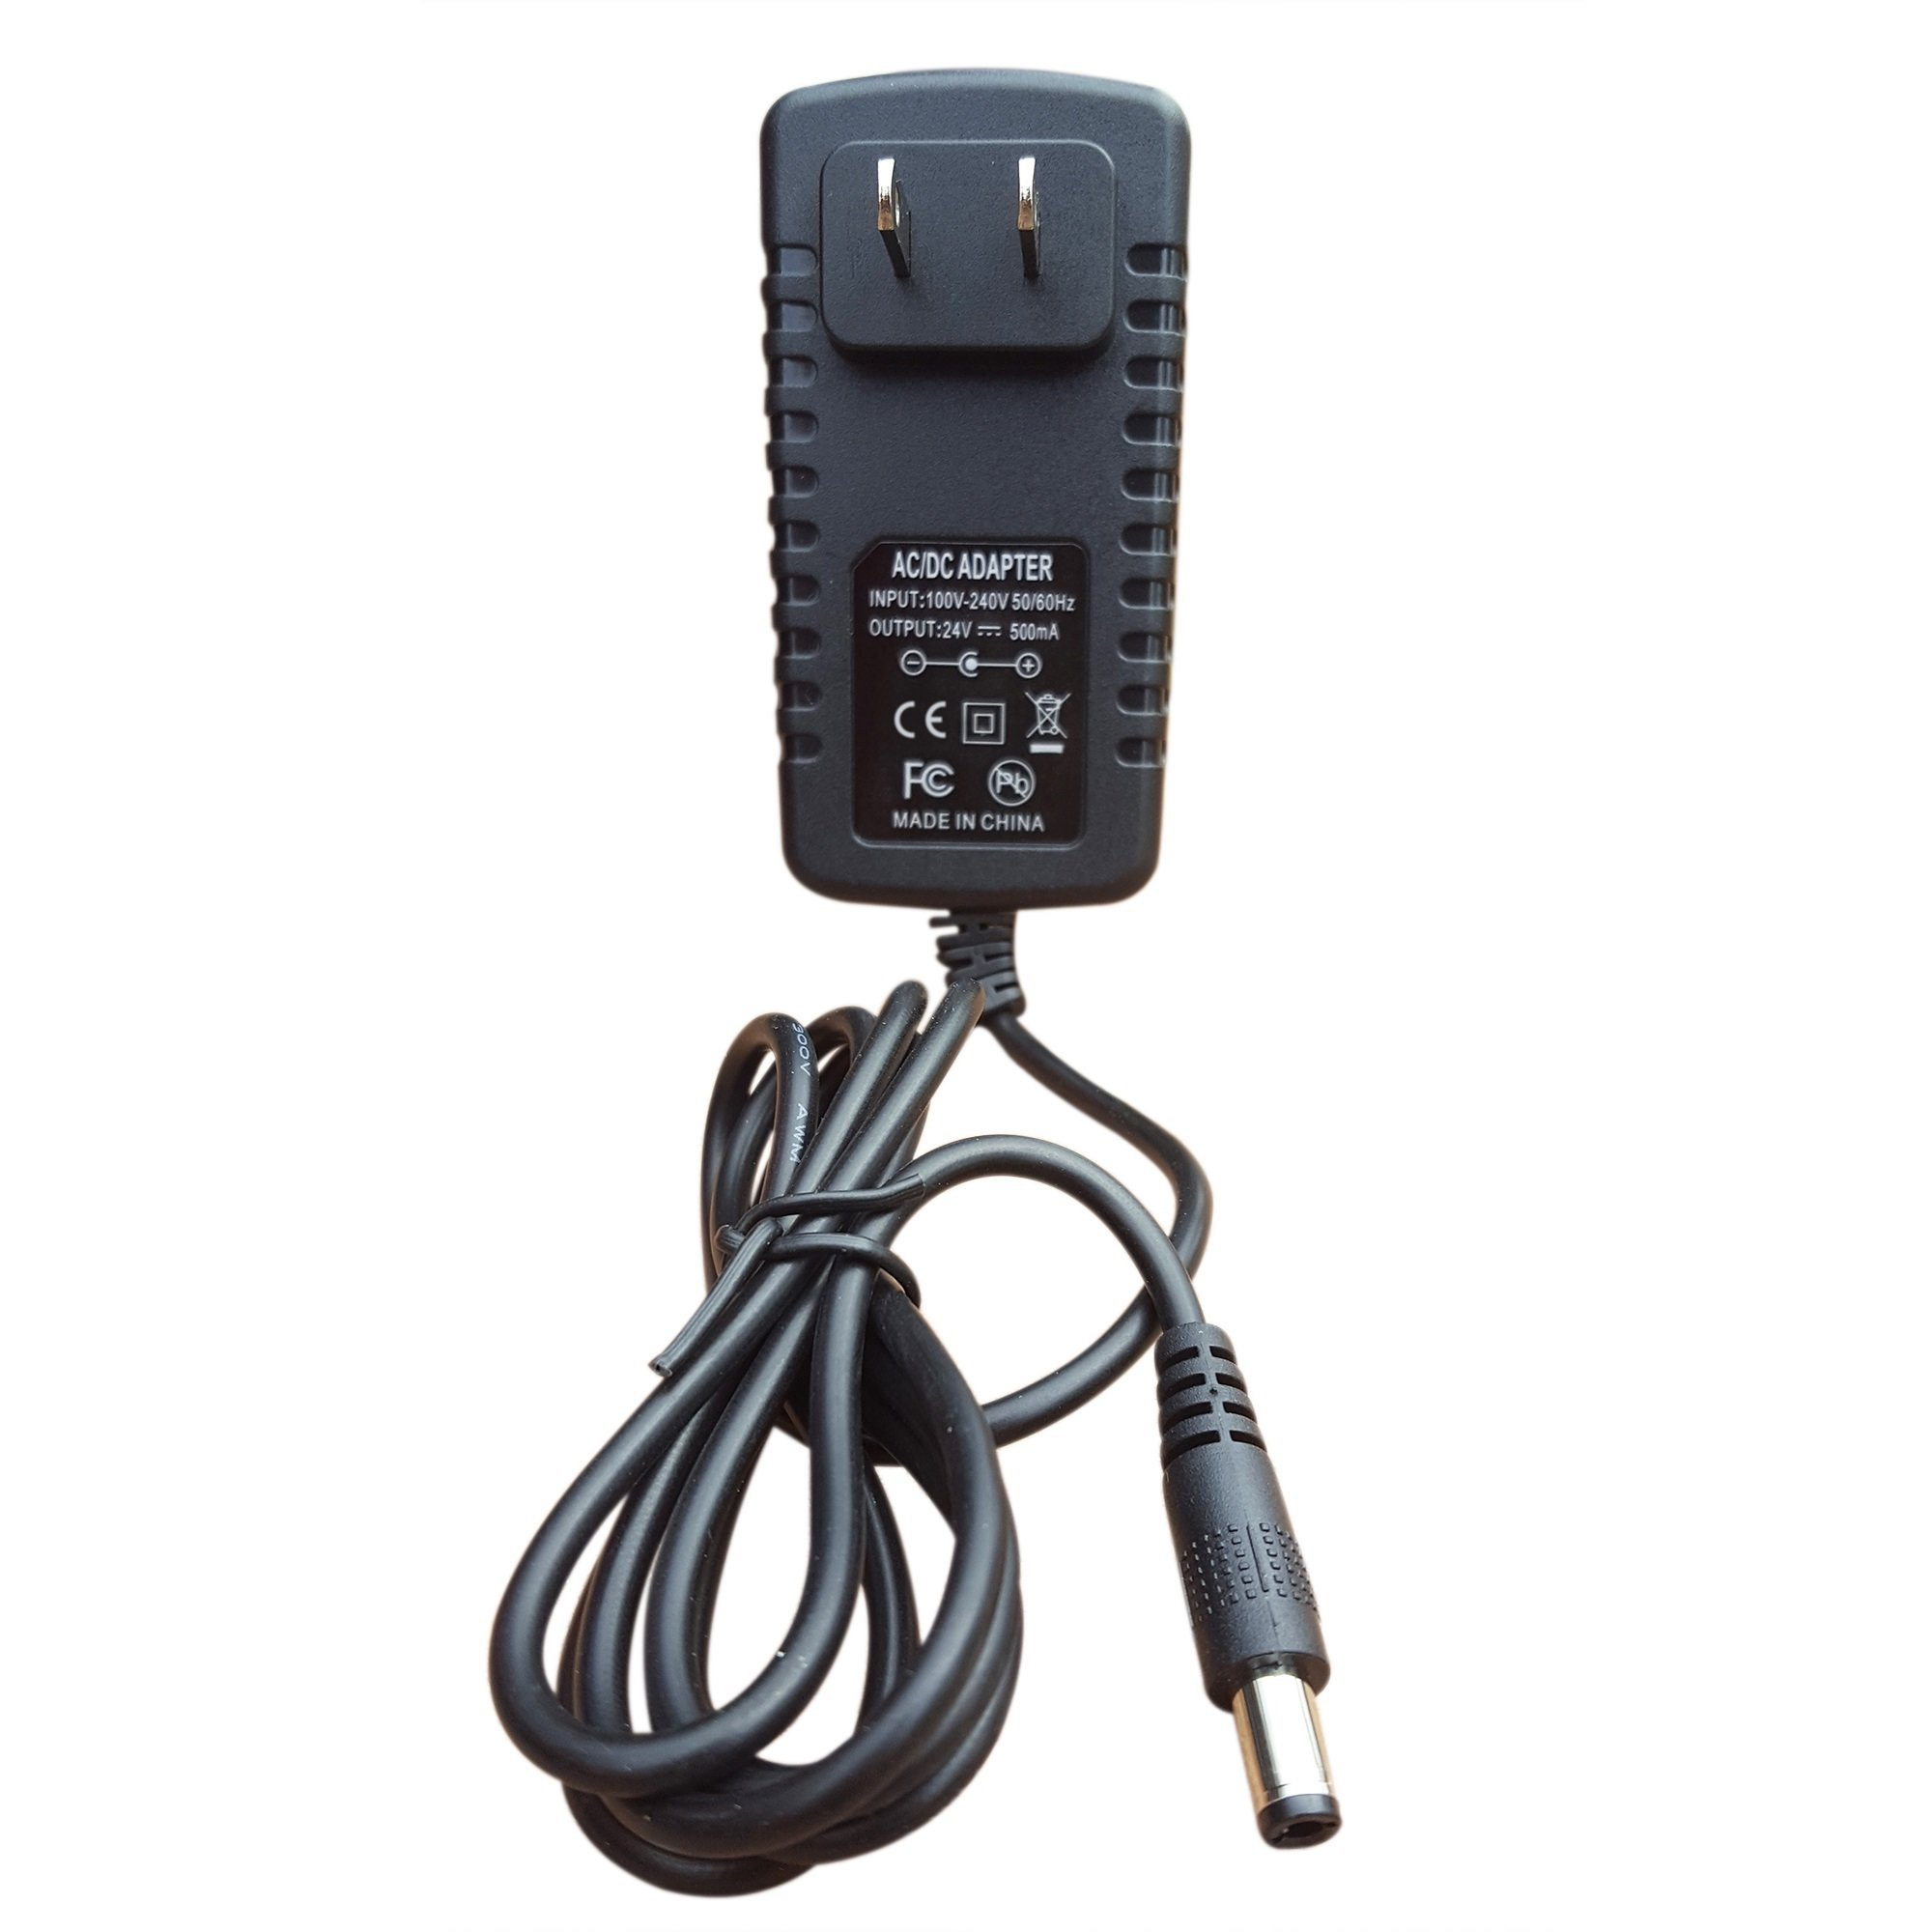 Accessory USA AC DC Adapter for Vtech IP8100-1 VOIP Vonage Broadband Internet Phone Power Supply Cord